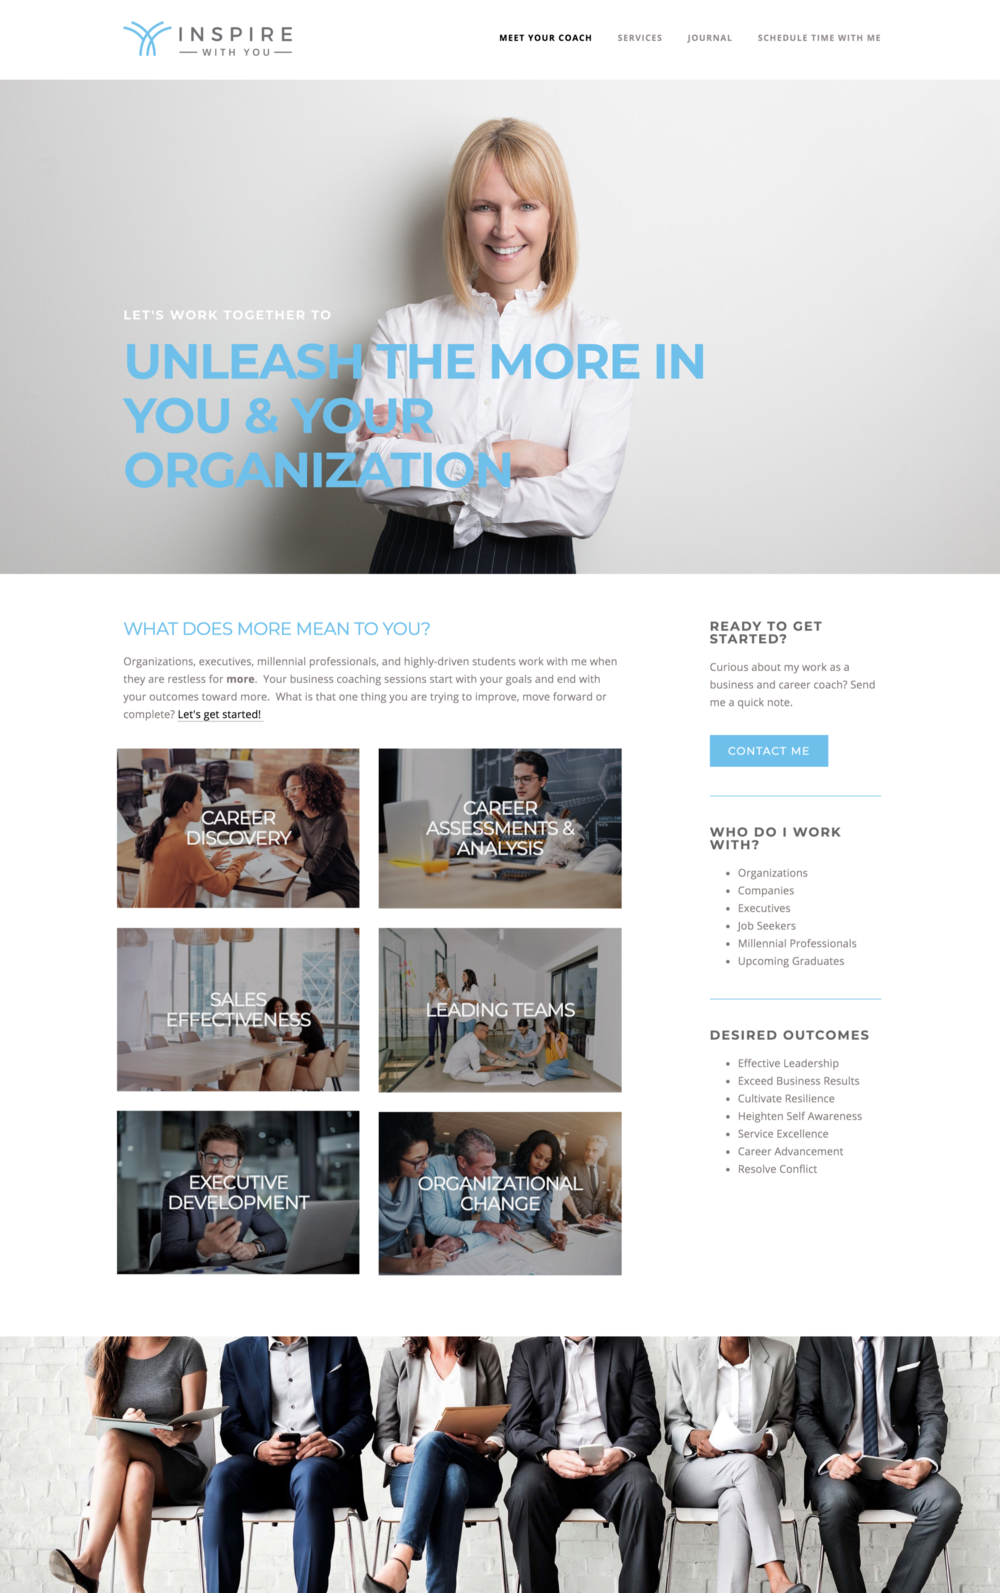 Inspire With You Squarespace Website Design for Small Business.png